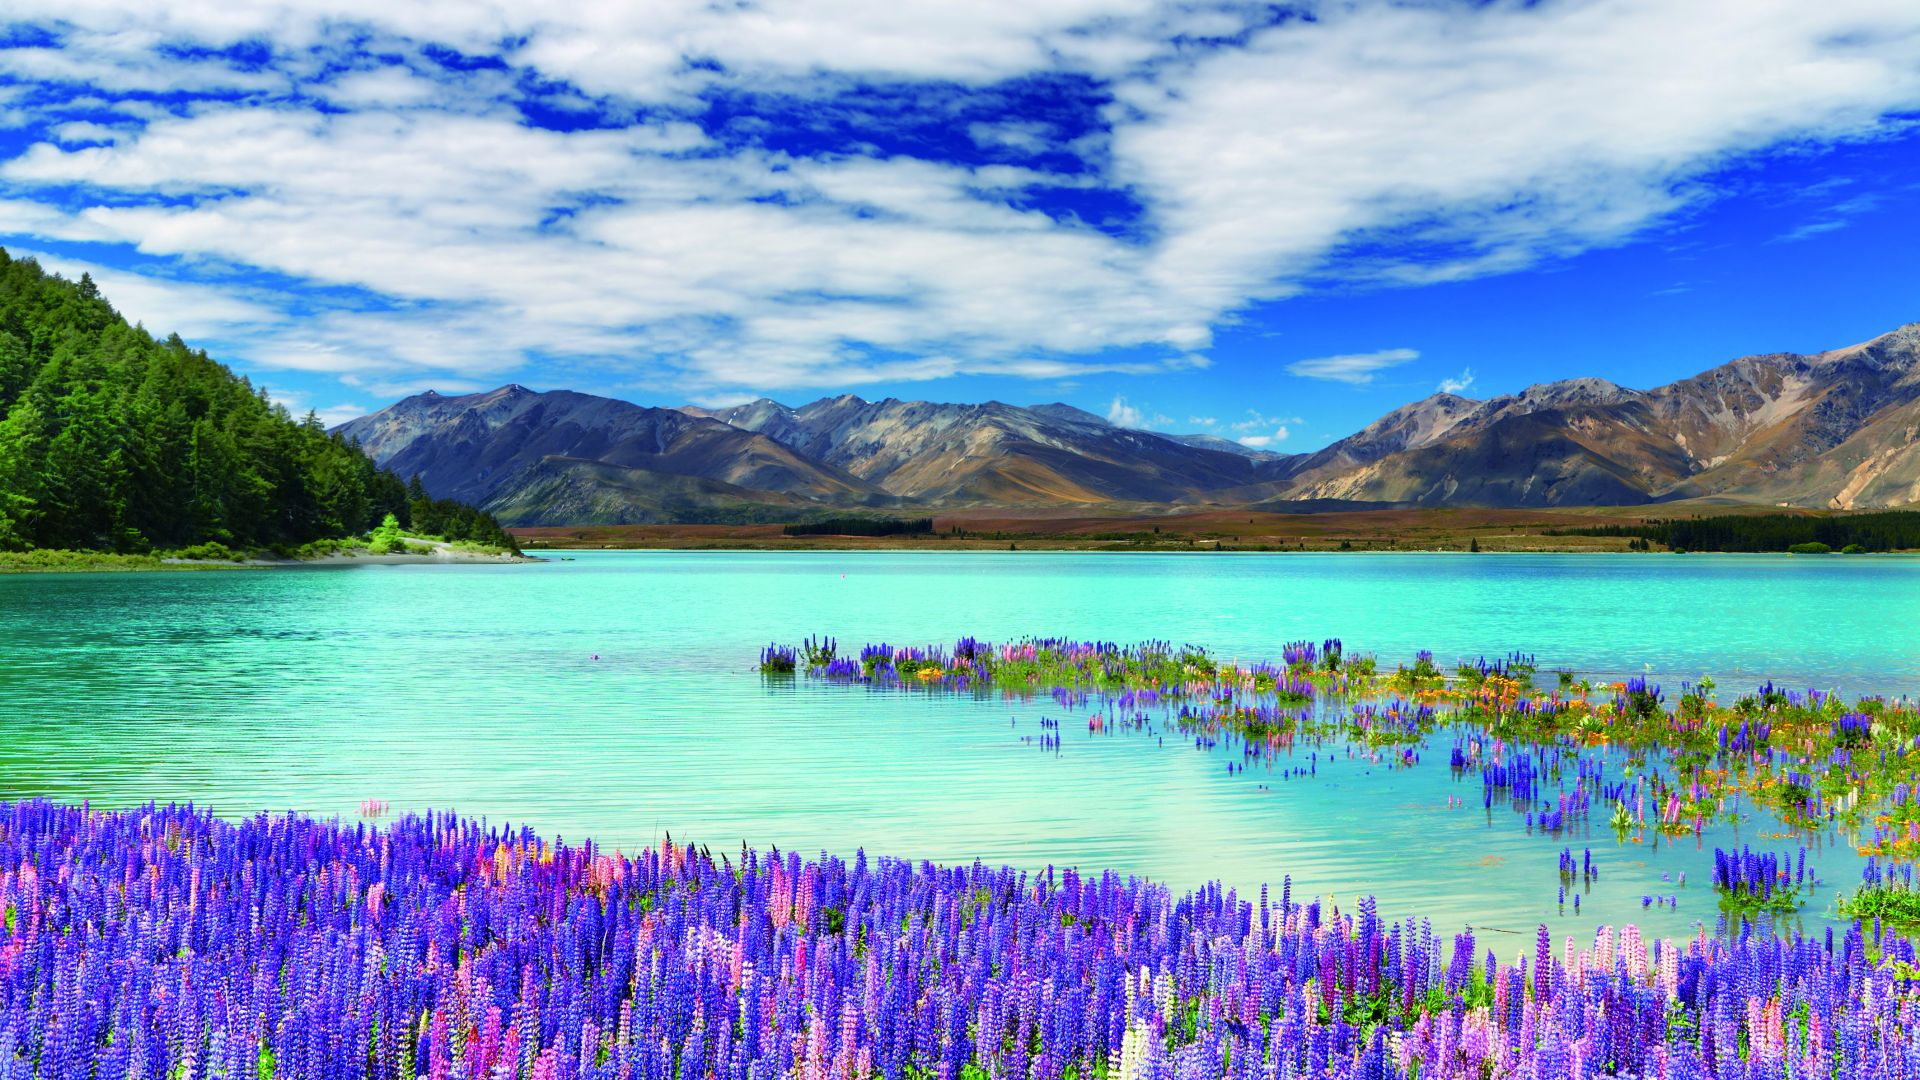 New Zealand, river, mountains, flowers, clouds, 4k (horizontal)